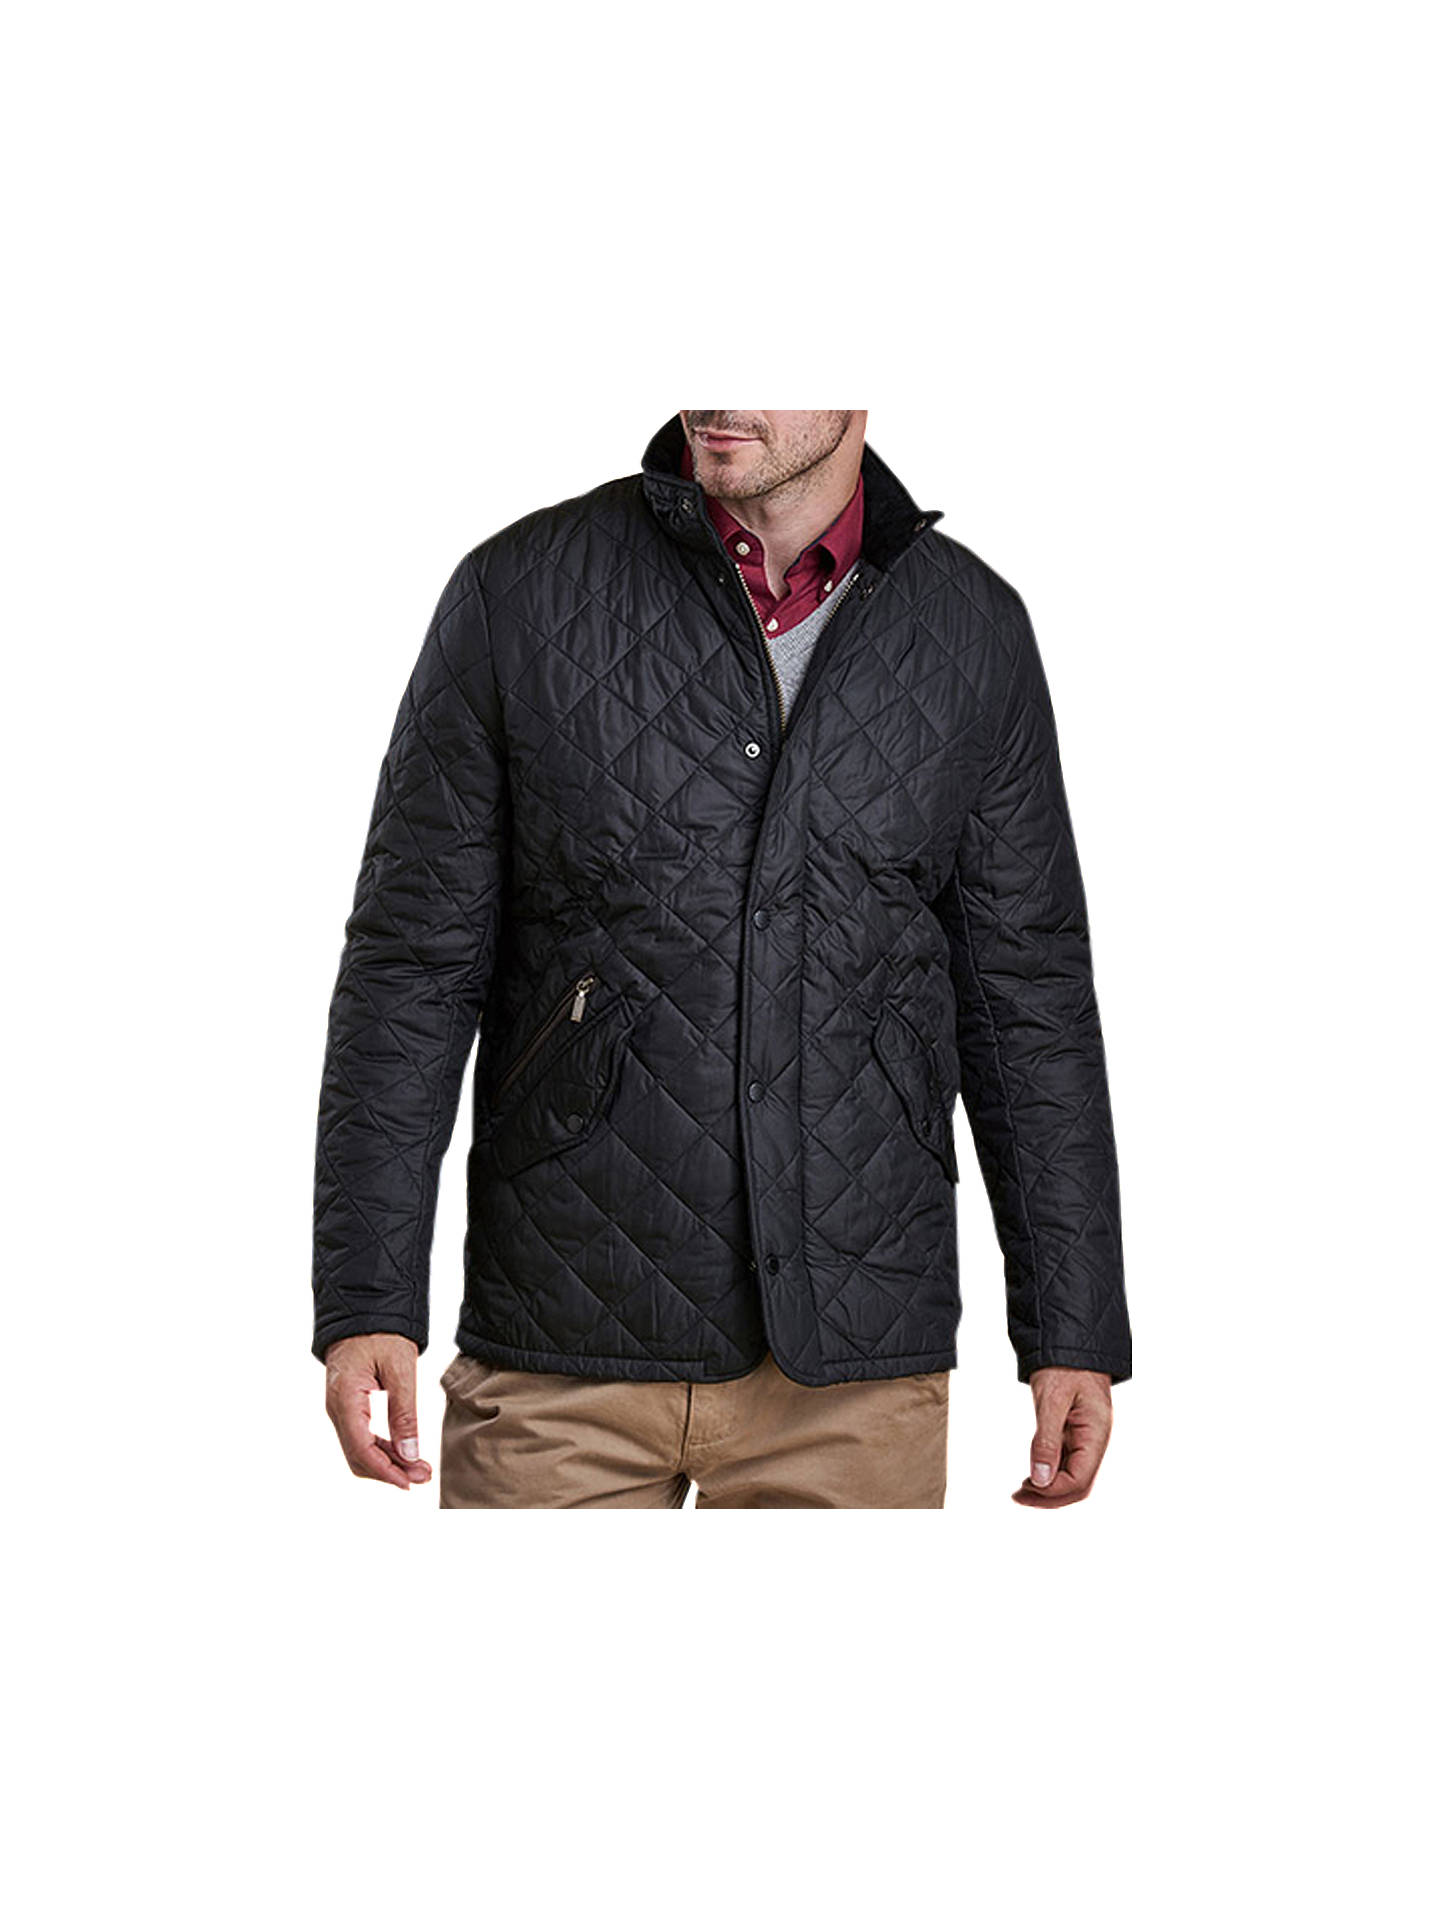 BuyBarbour Chelsea Sportsquilt Water-Resistant Quilted Jacket, Black, S Online at johnlewis.com